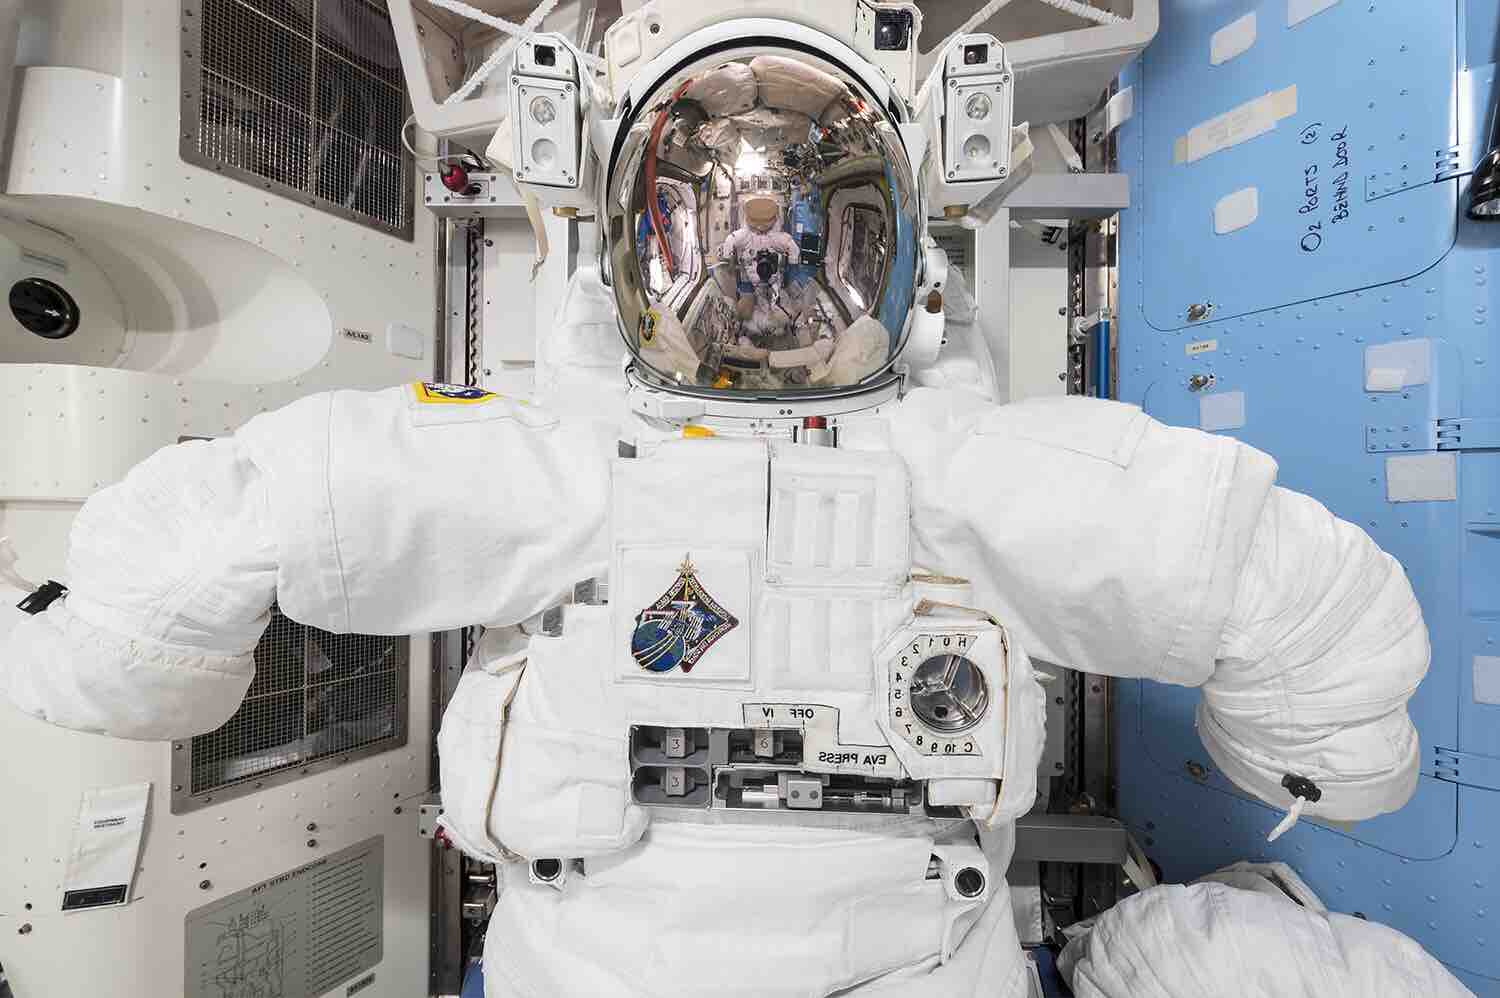 interior-space-by-roland-miller-and-paolo-nespoli-4